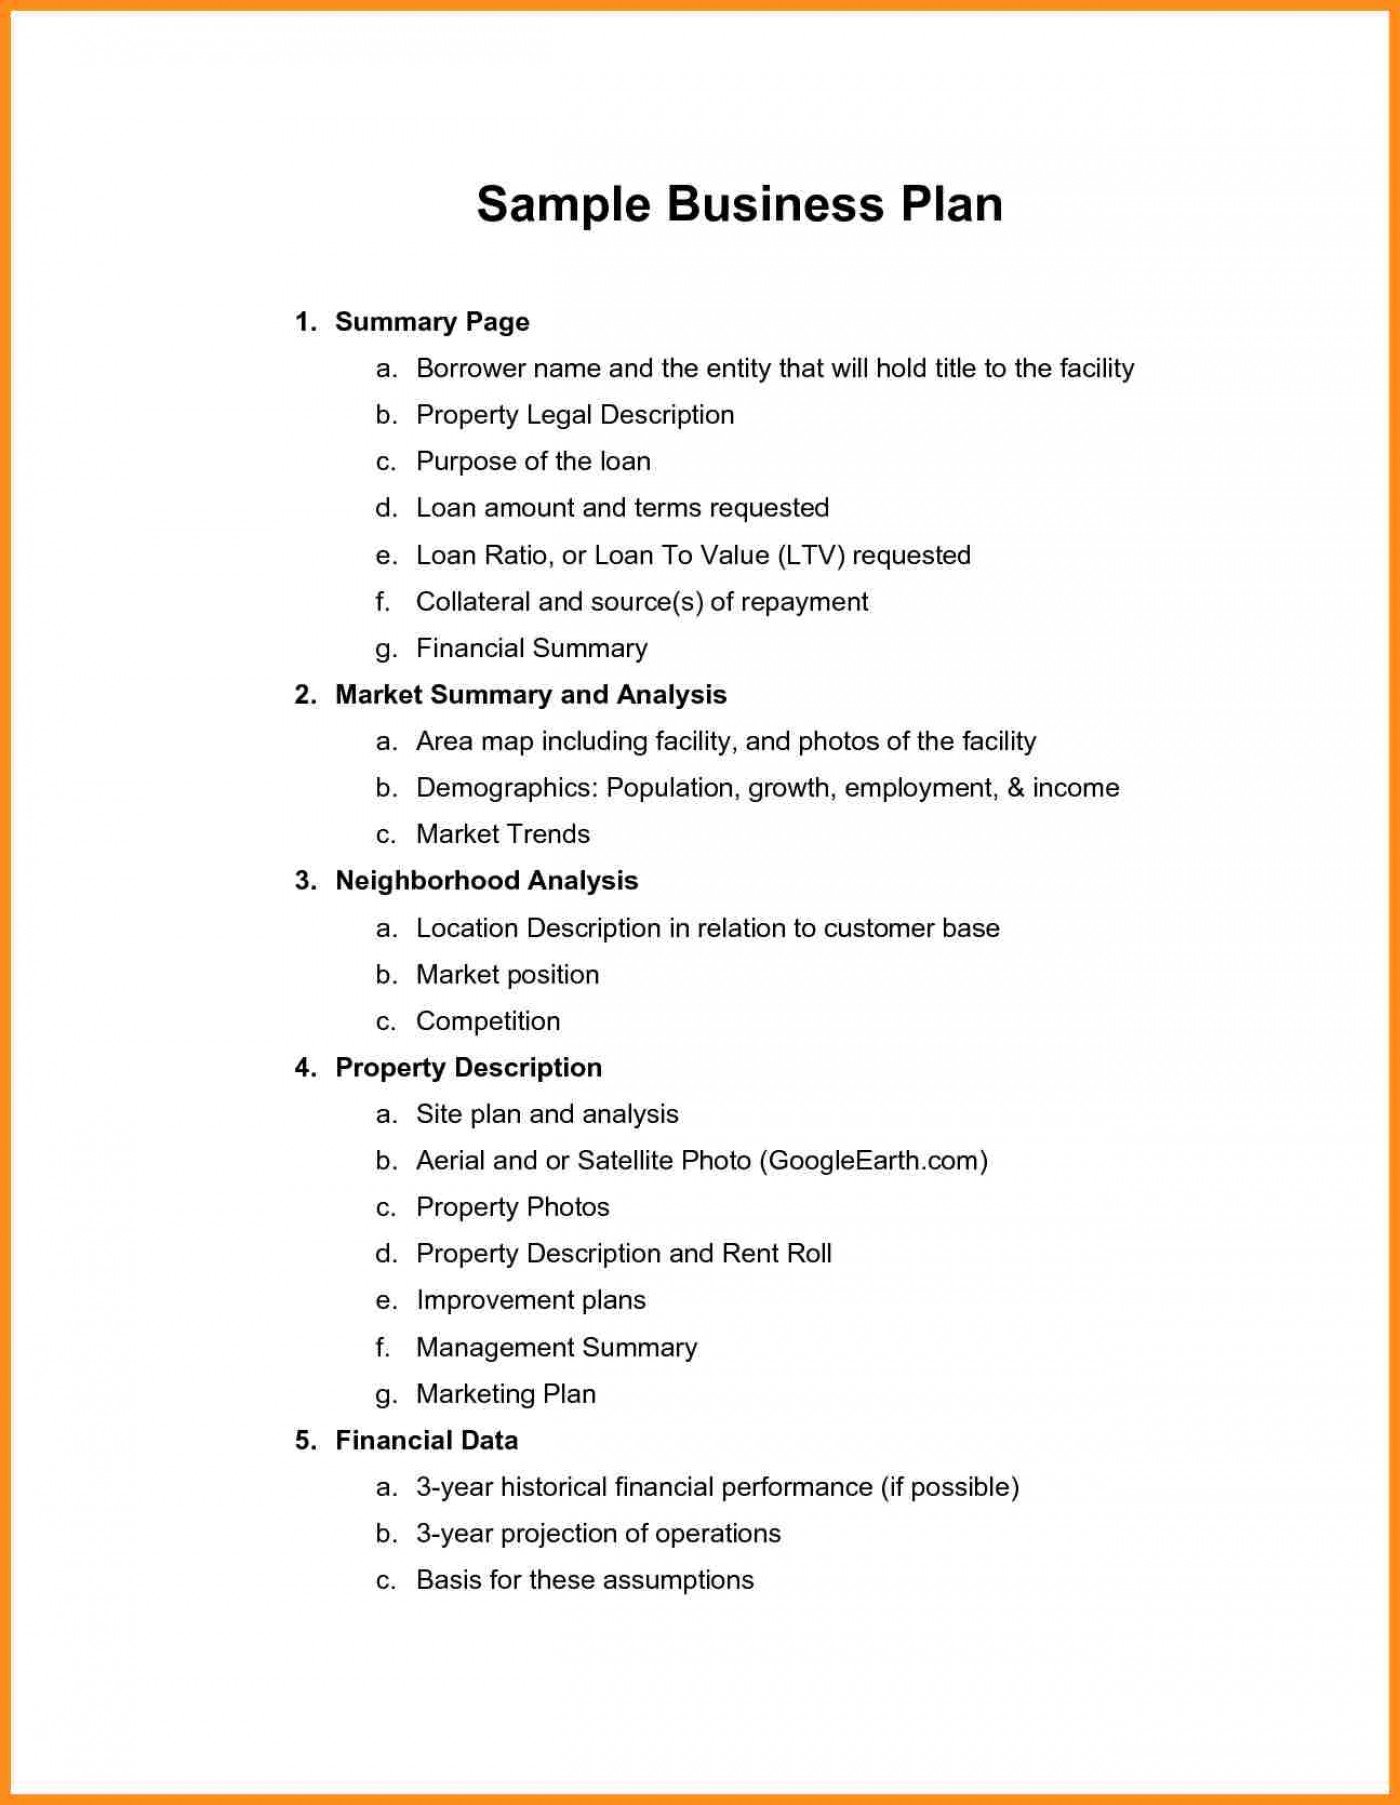 021 Research Paper Parts Of And Its Definition Pdf Business Plan Examples Free Resume Sba Template W Introduction Presentation Explained Executive Summary Staggering A 1400